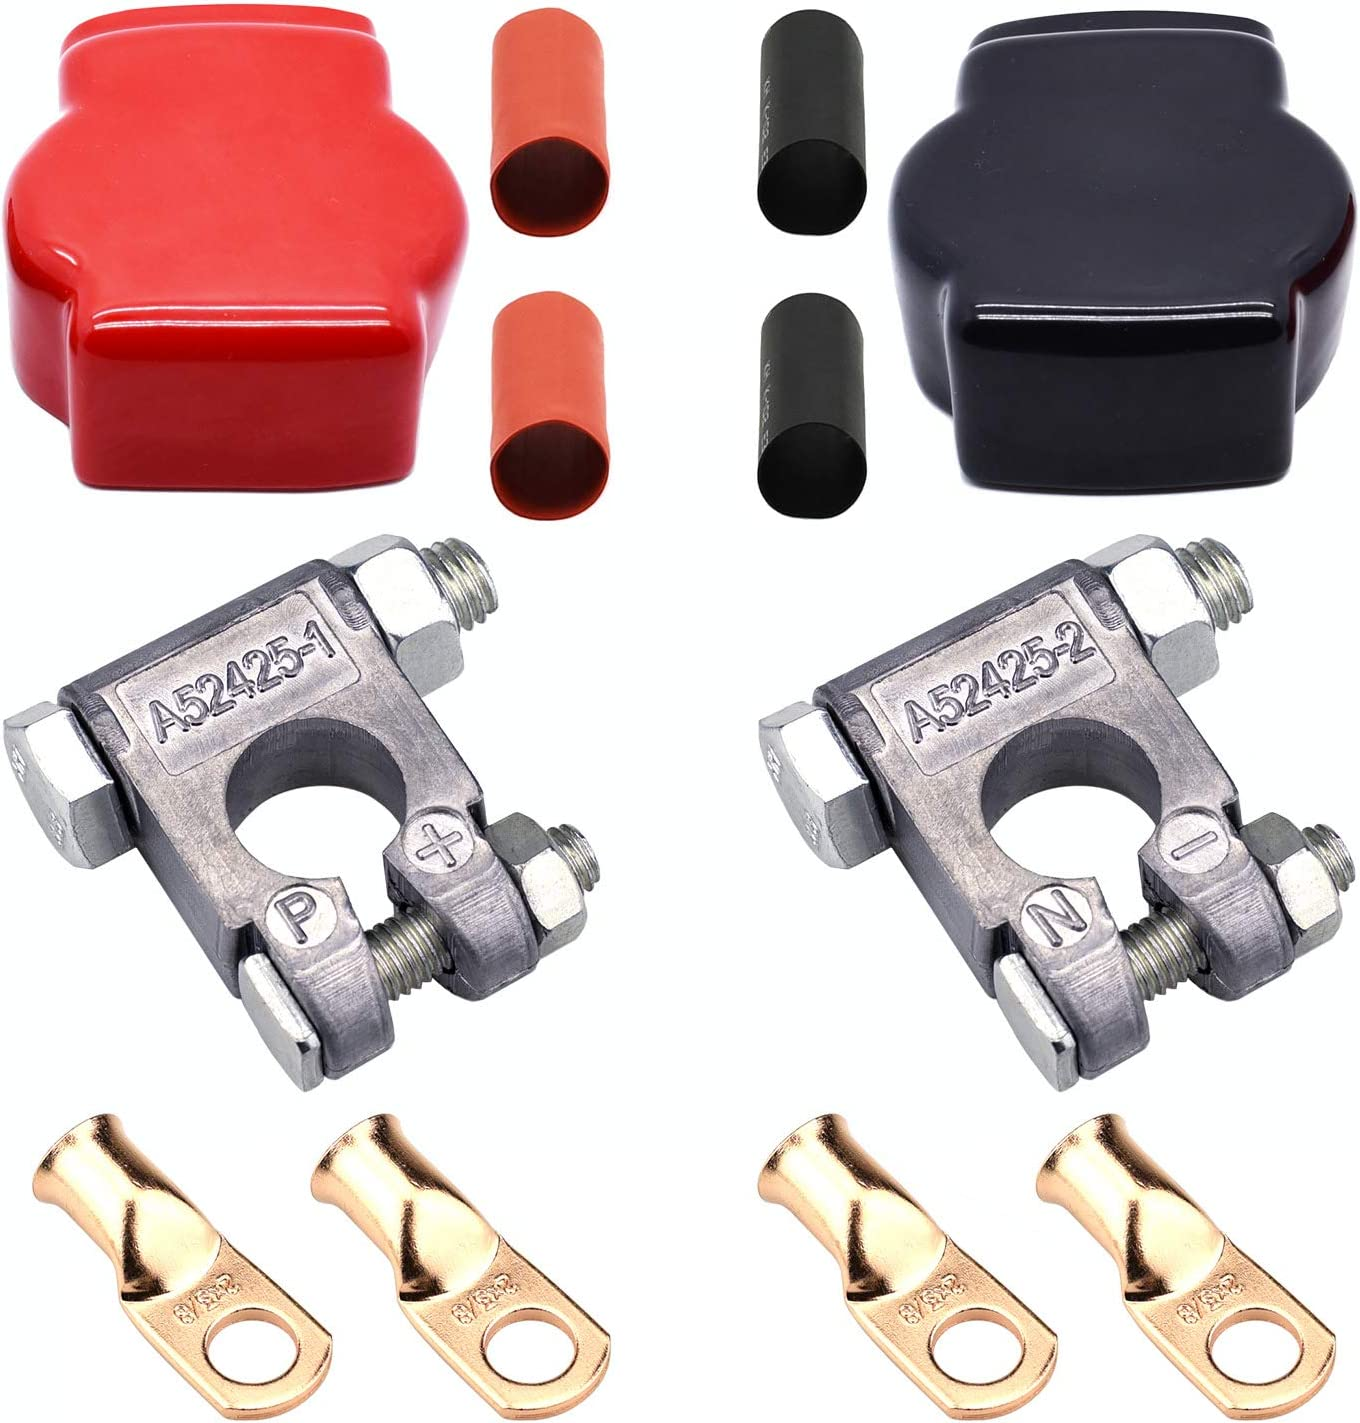 Cllena Military Style Battery Terminals